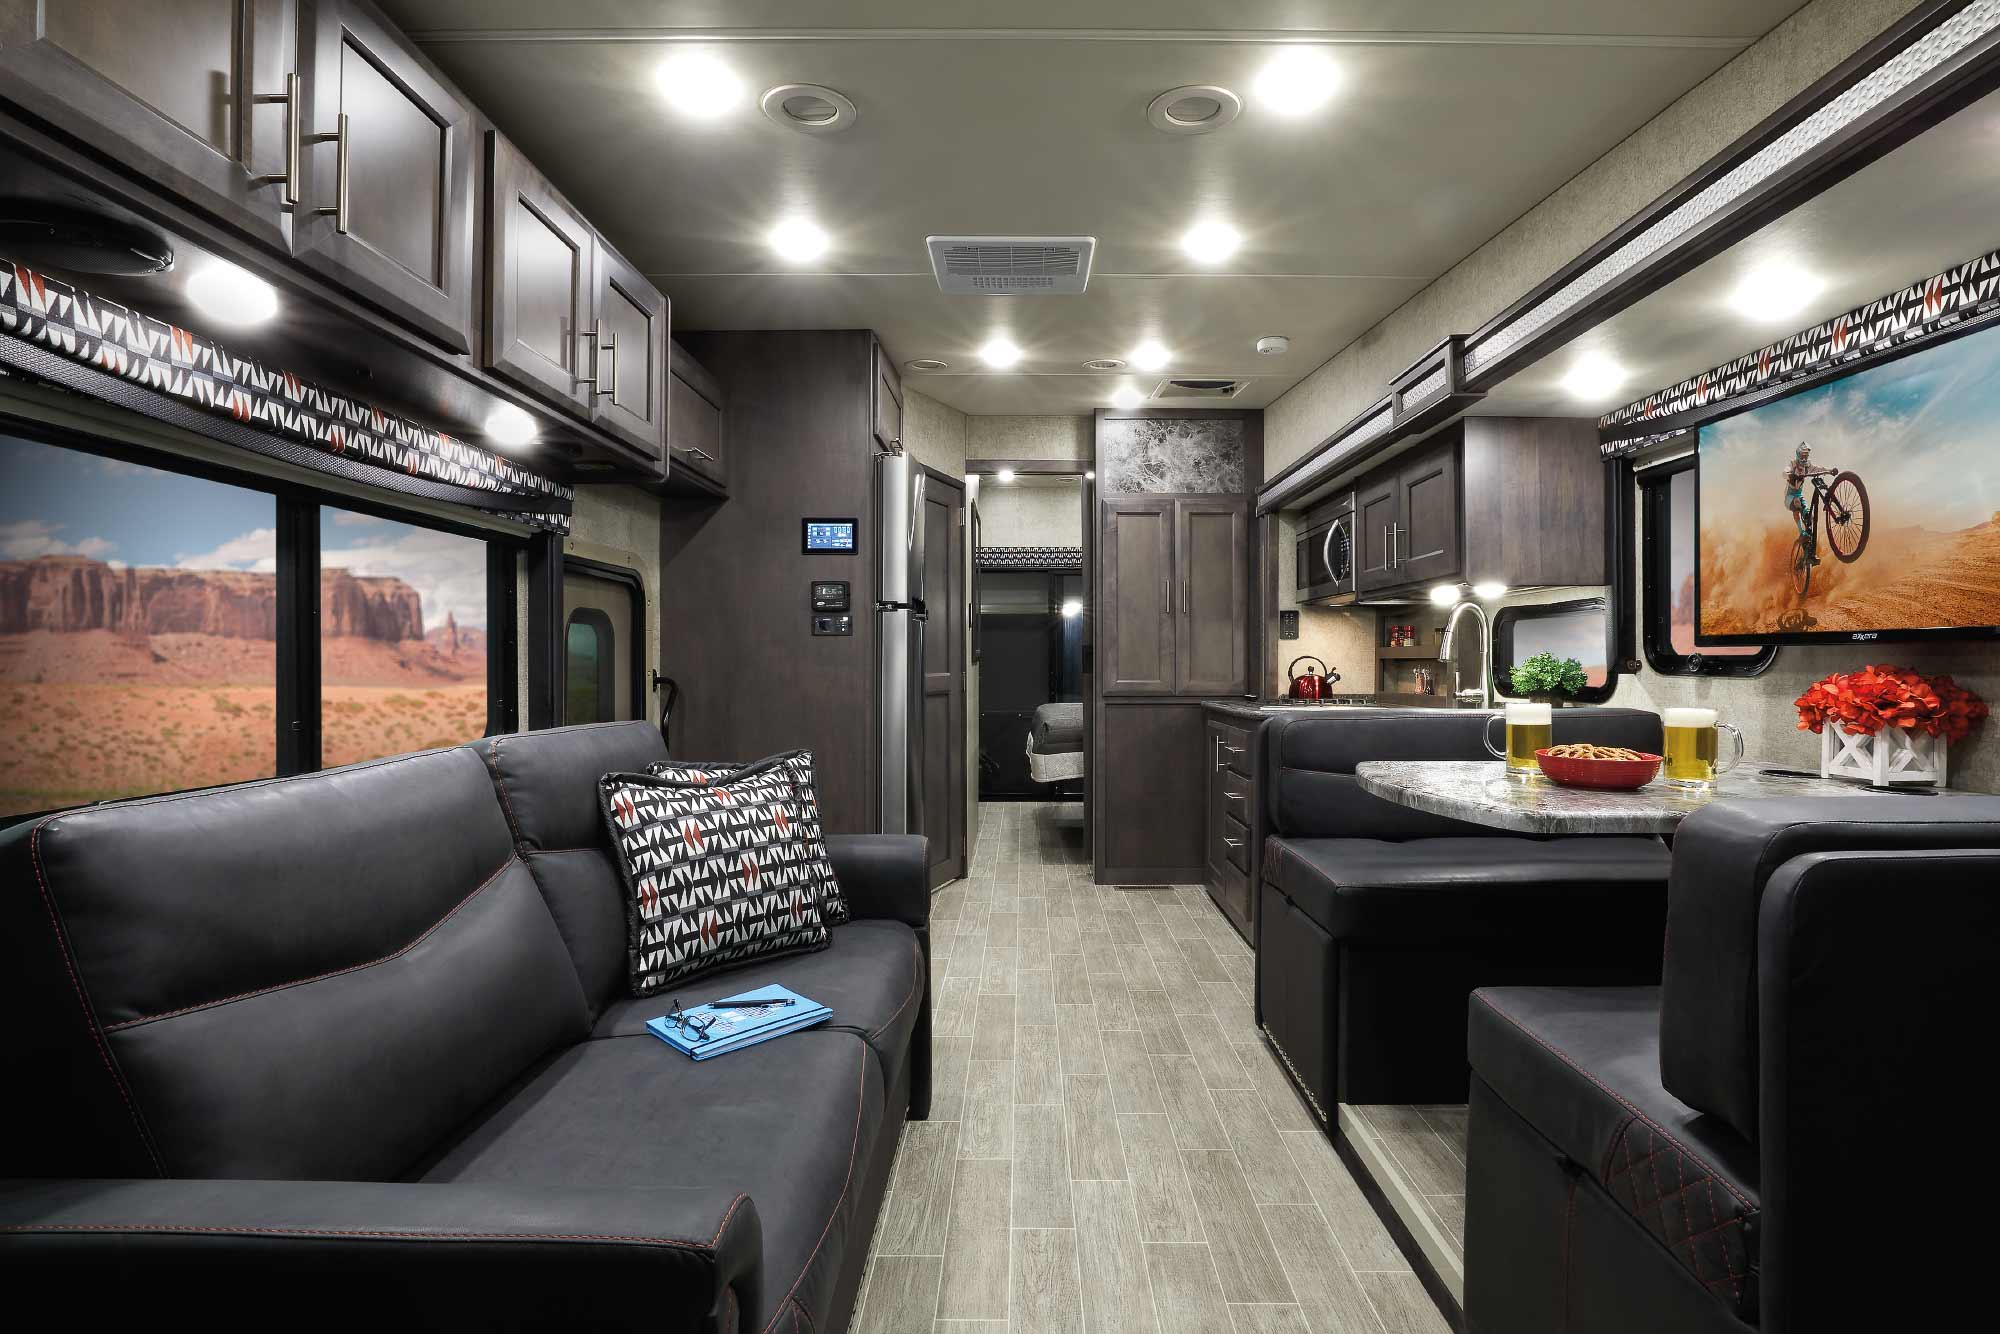 thor outlaw class a toy hauler motorhomes